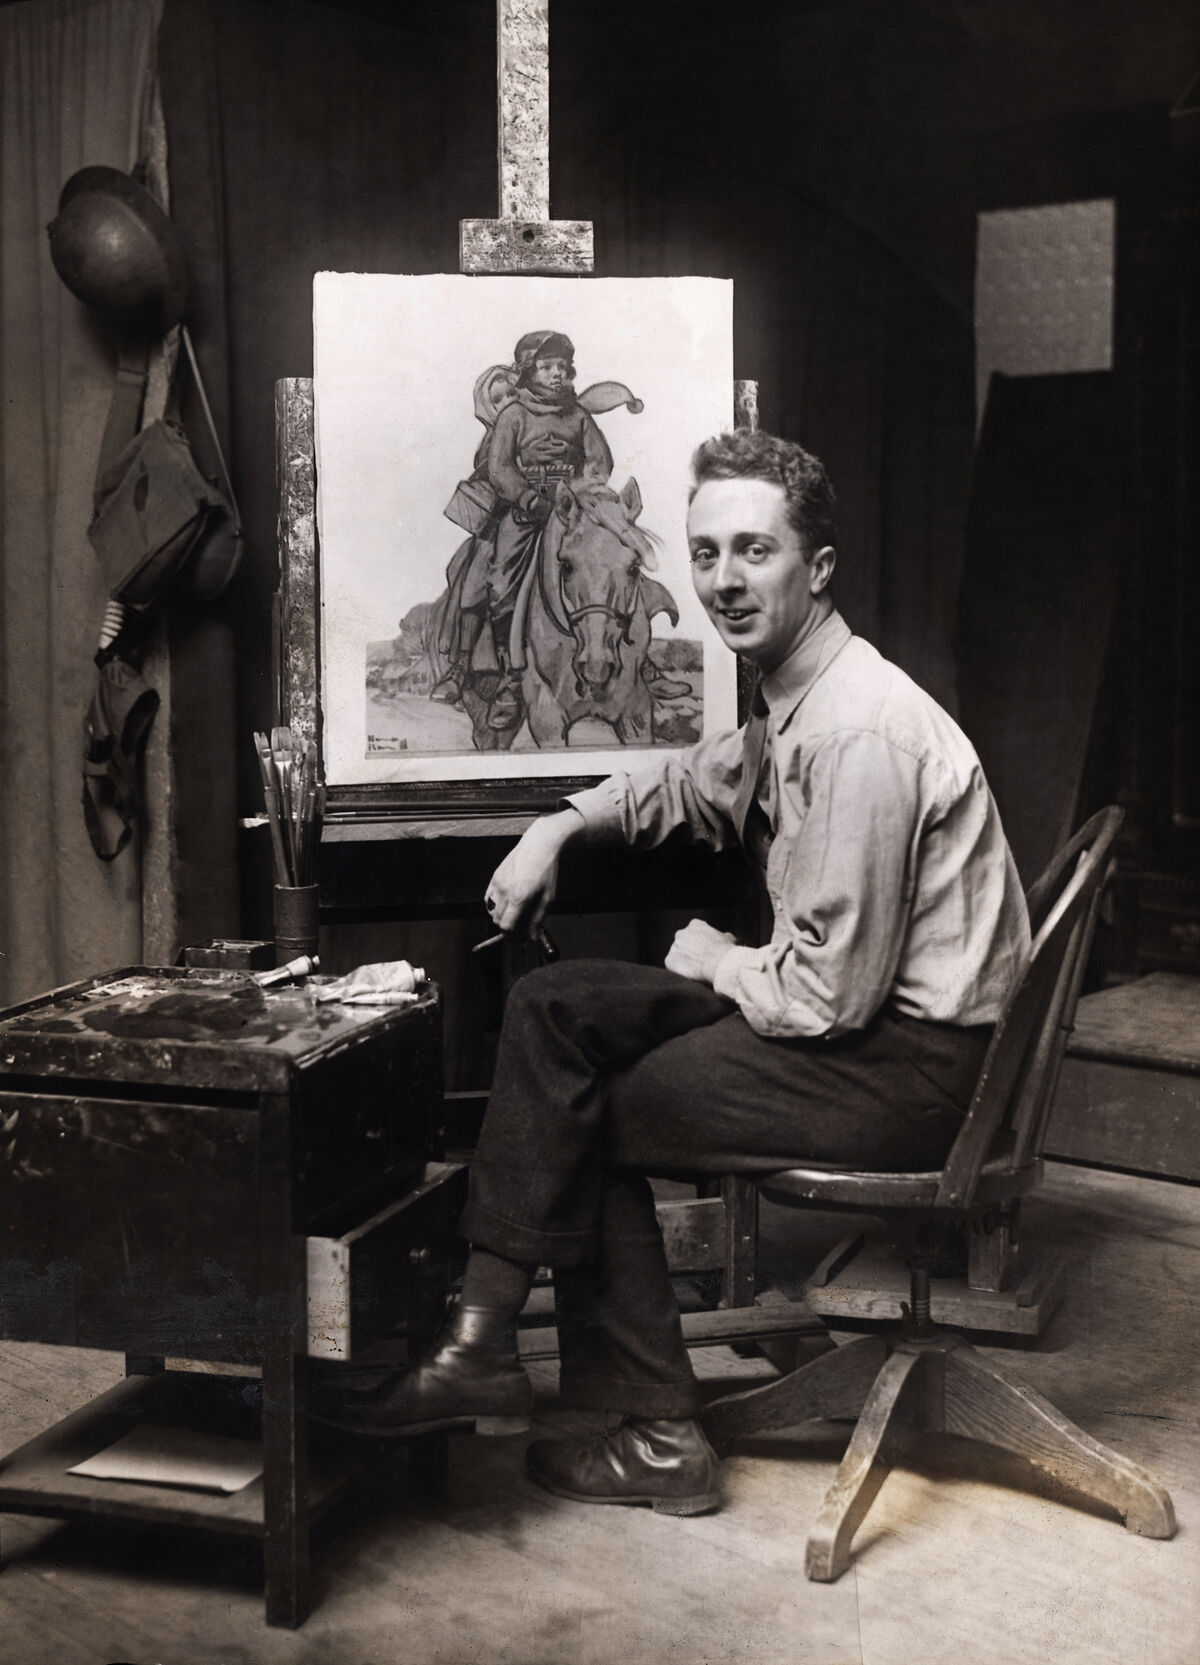 Norman Rockwell painting at his easel. Photo by George Rinhart/Corbis via Getty Images.